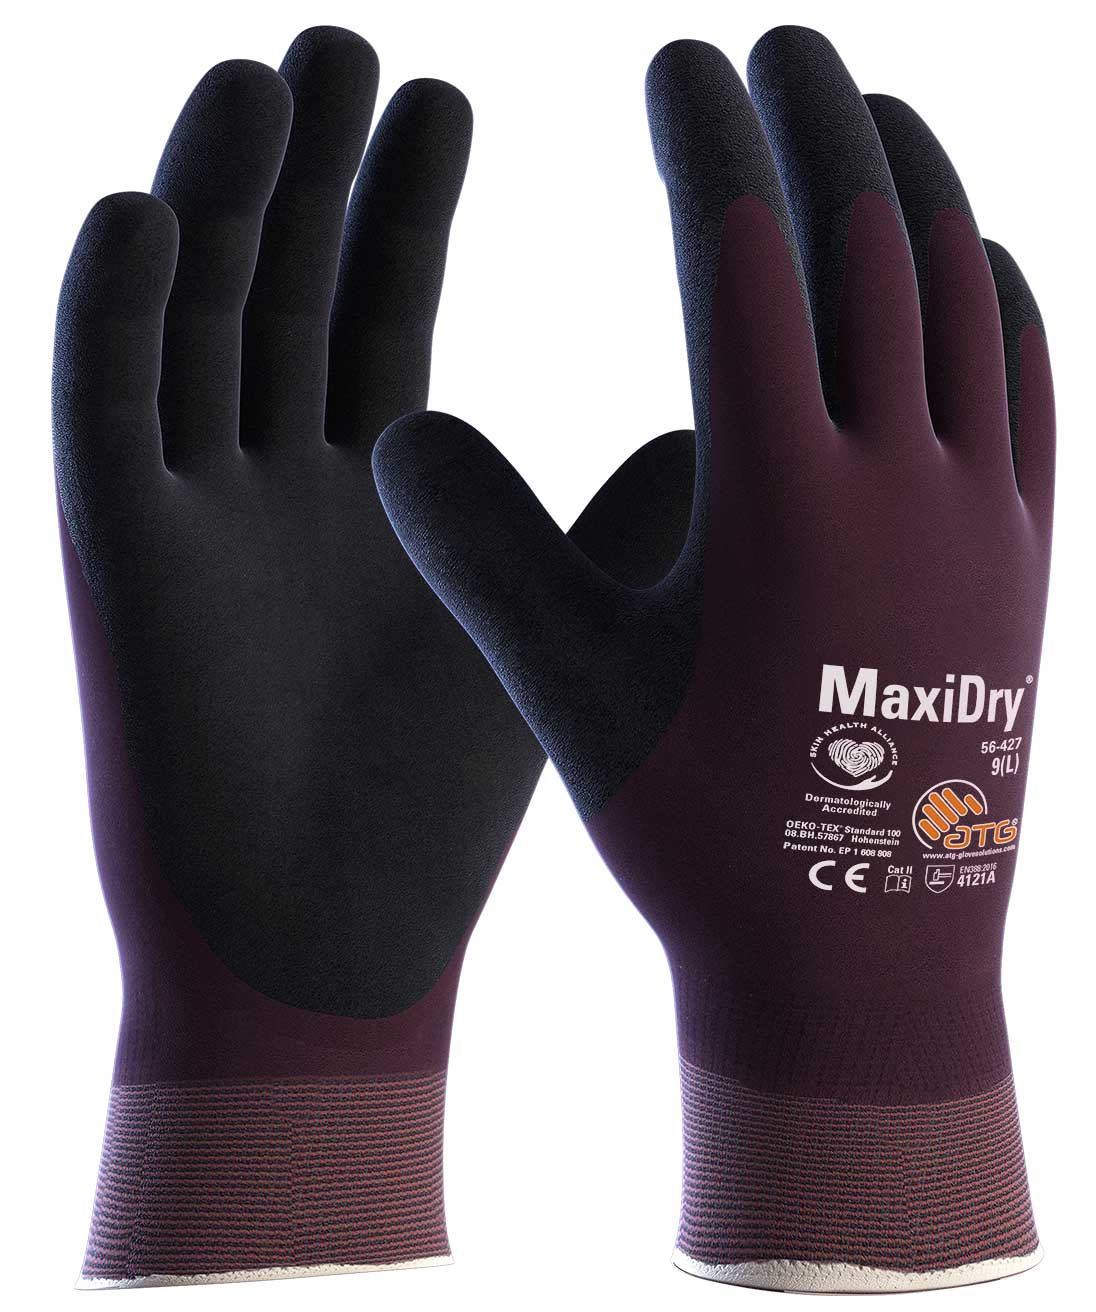 56-427 MaxiDry® Fully Coated to Cuff Image